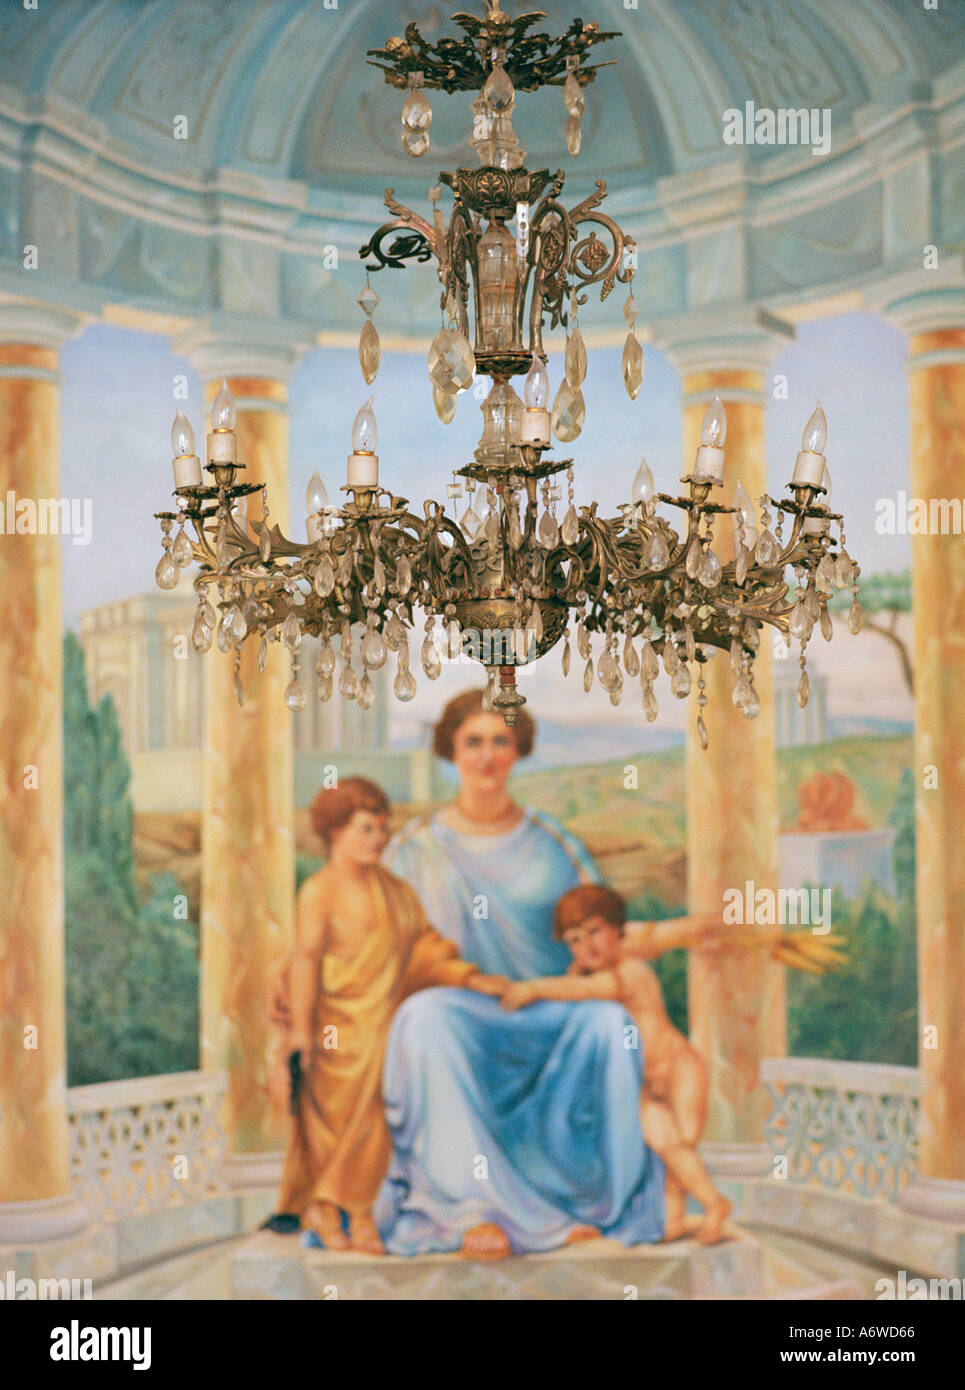 Chandelier and art painting in a house in Oaxaca City in Oaxaca State in Mexico in Latin Central America. Beauty Beautiful Serenity Travel - Stock Image